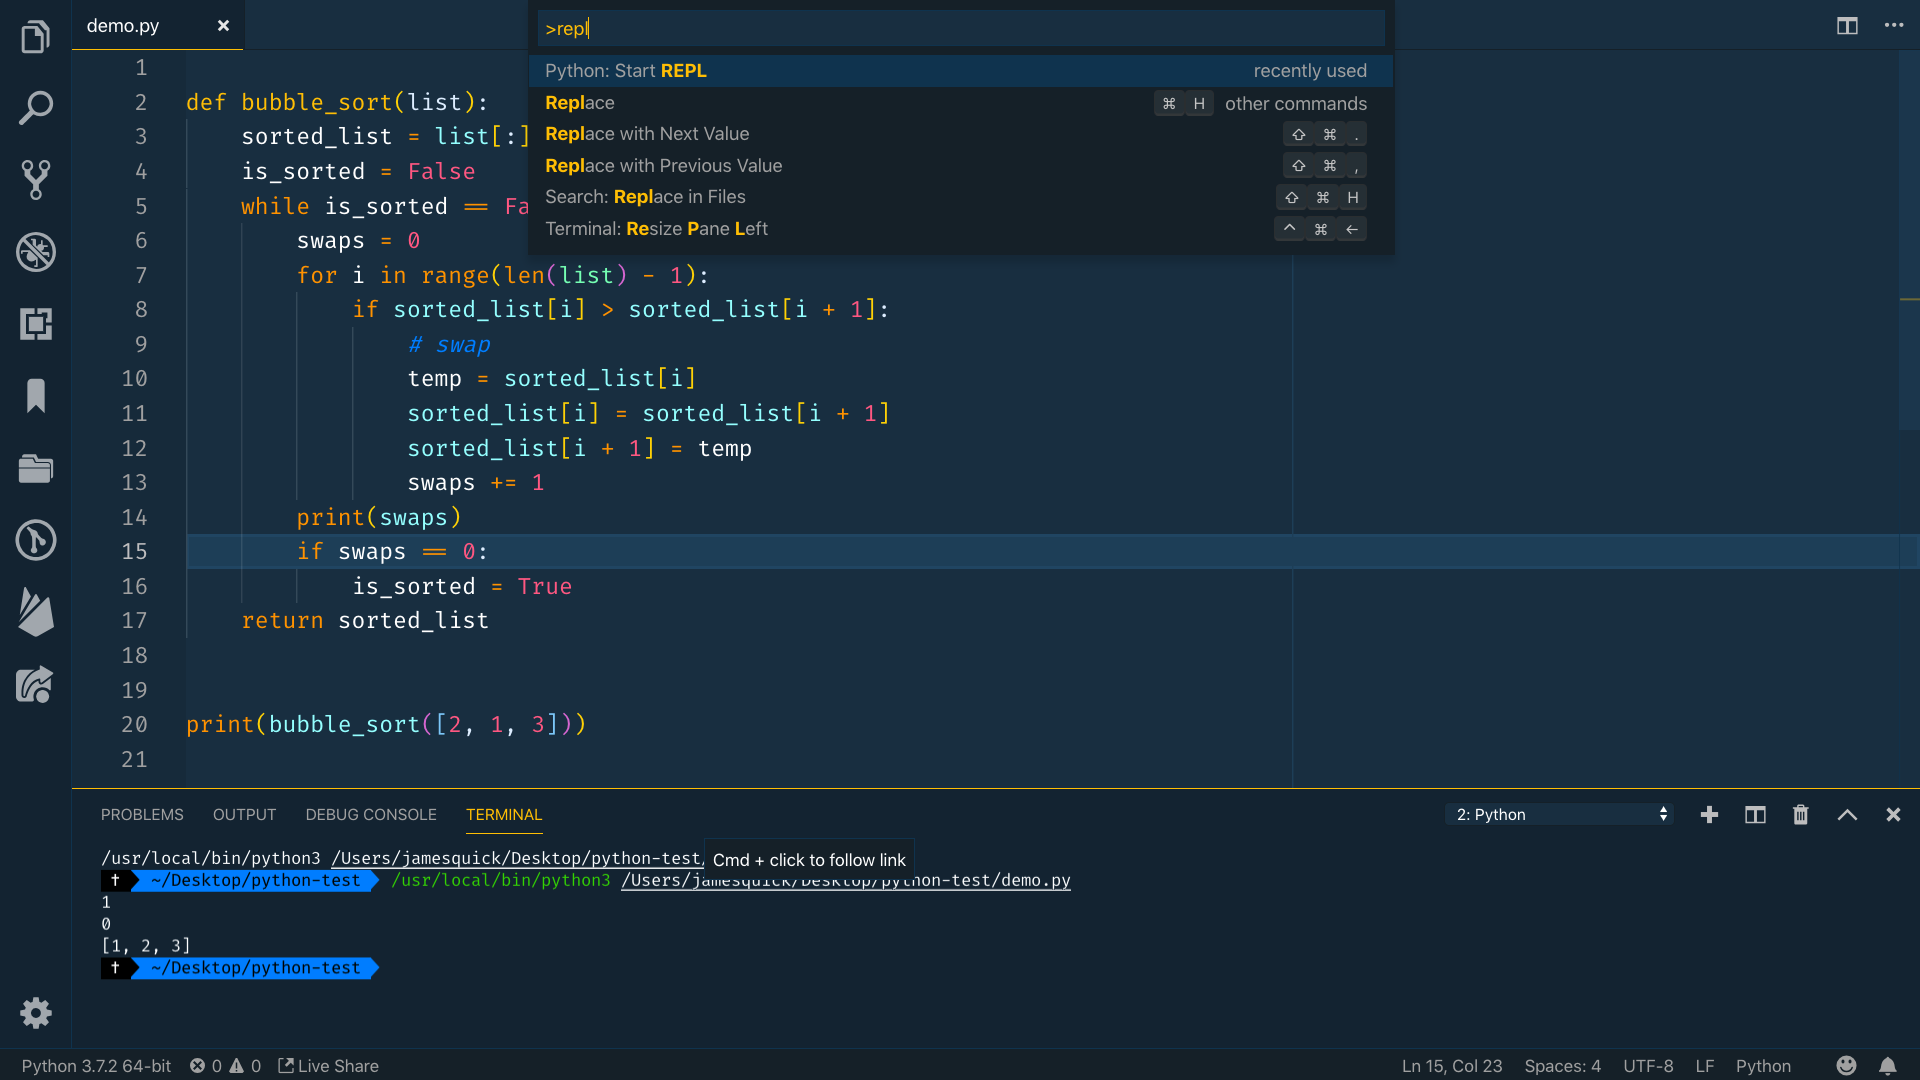 Python Start REPL selected in the command palette